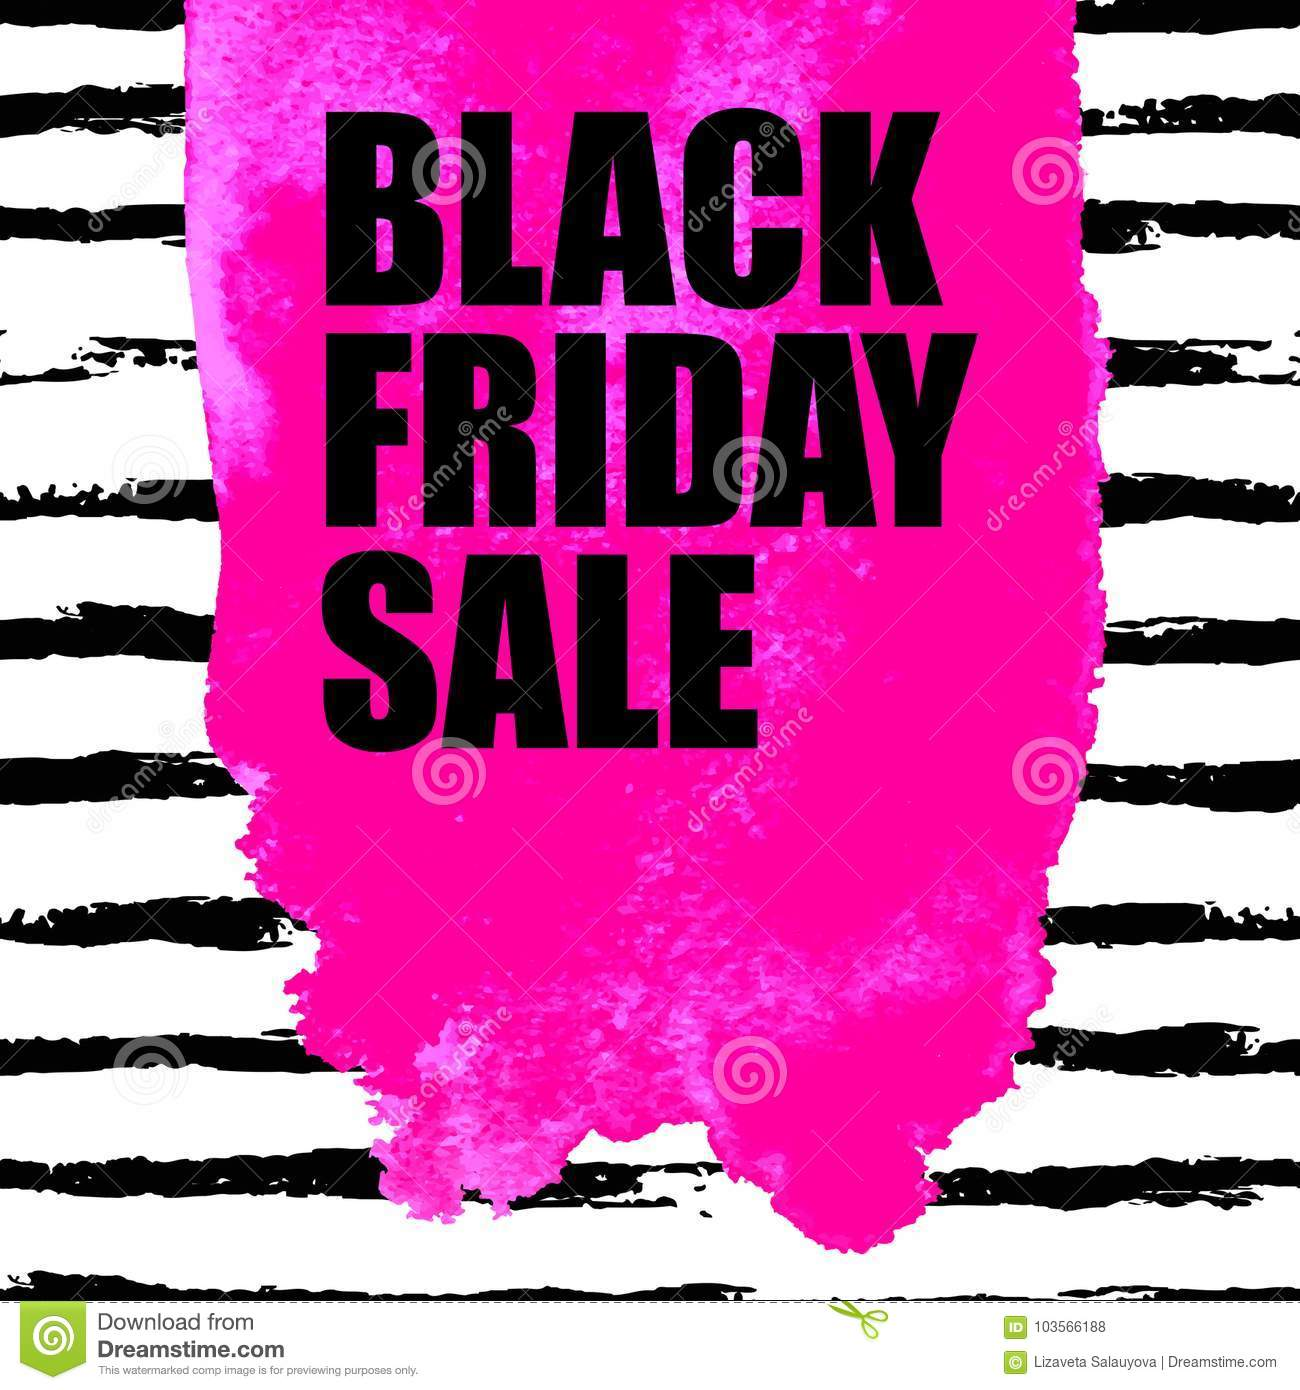 43aef9efa2a Vector illustration of Black Friday Sale banner with pink watercolor spot  on watercolor brush stroke background. Inscription design template.